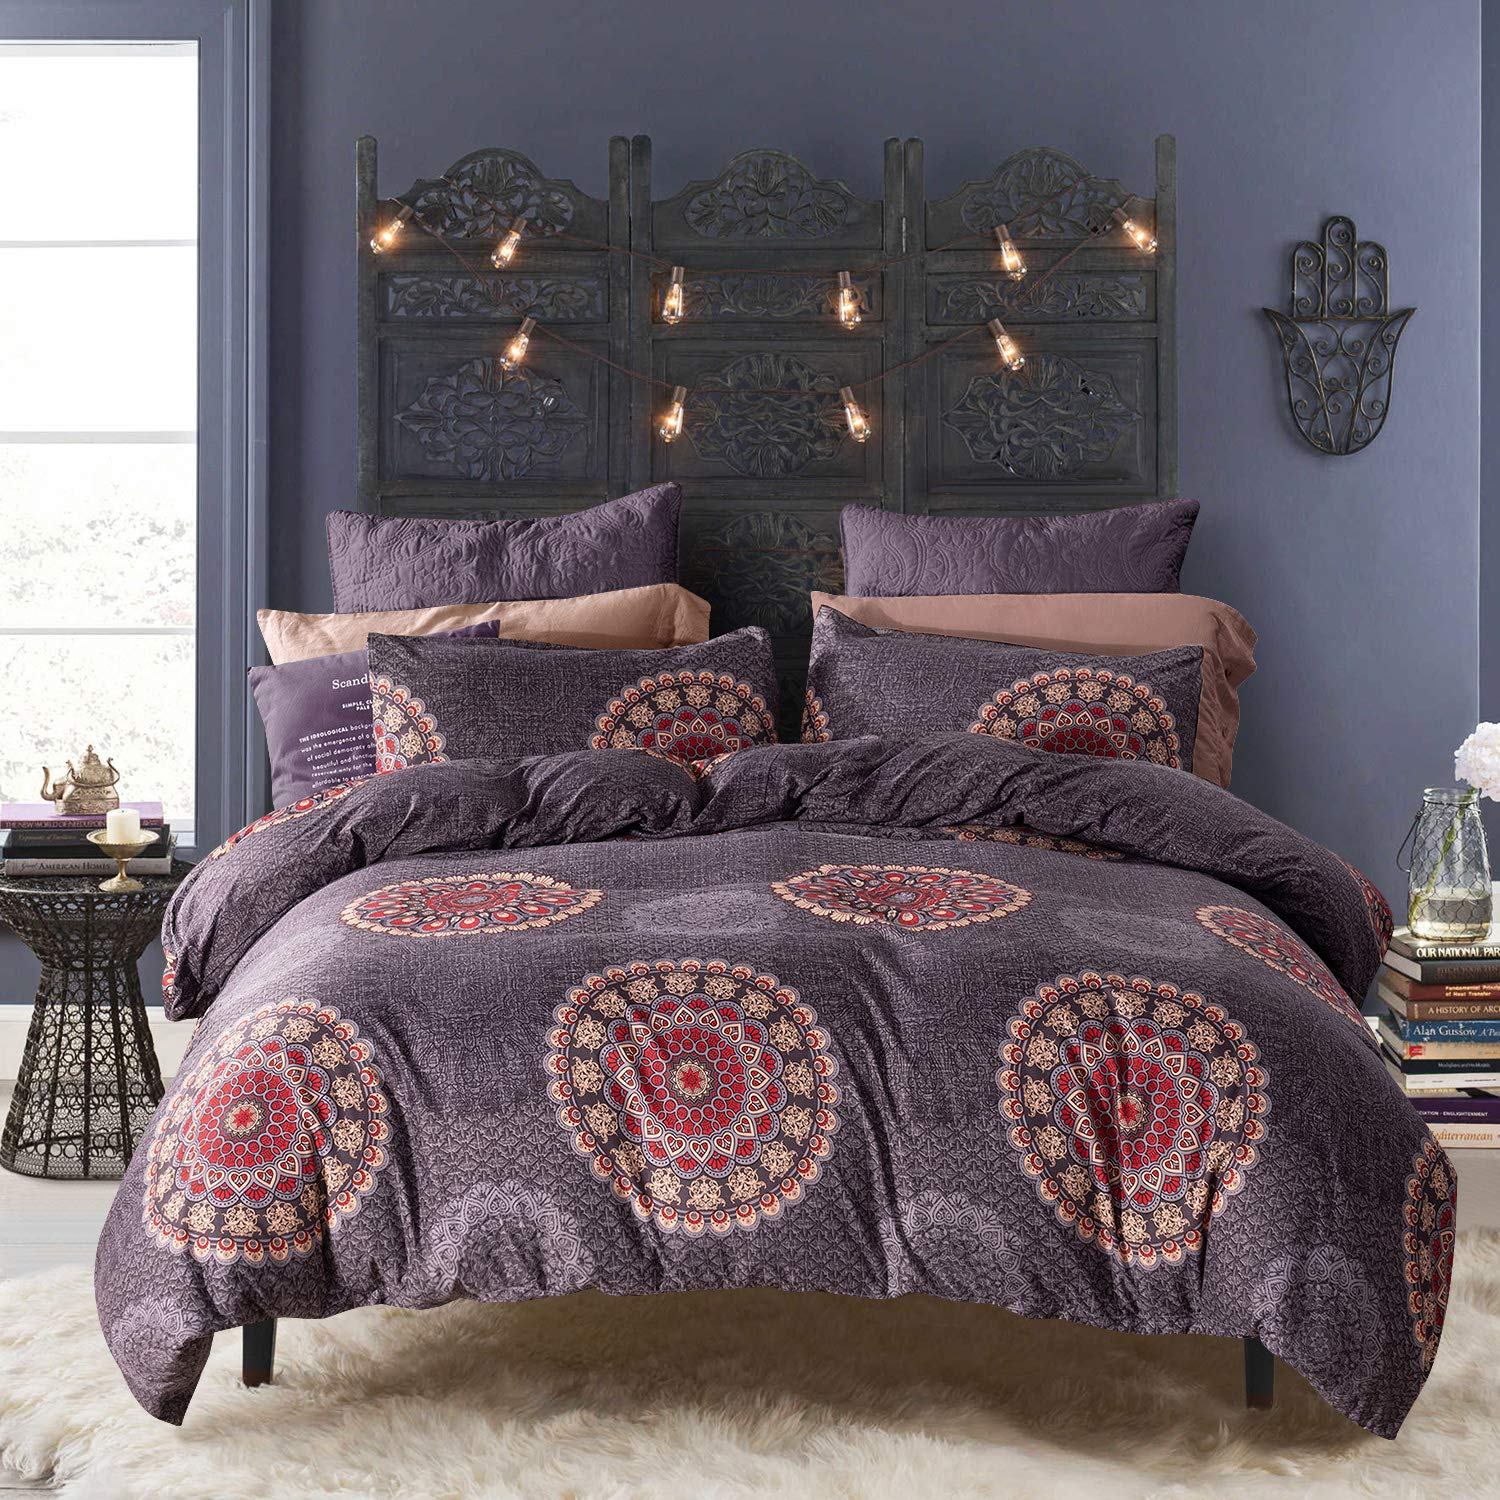 HYPREST Bohemian Duvet Cover Set Boho Chic Mandala Printed Bedding Quilt Cover Sets Lightweight Microfiber Breathable with Zipper Ties(Queen,Purple)